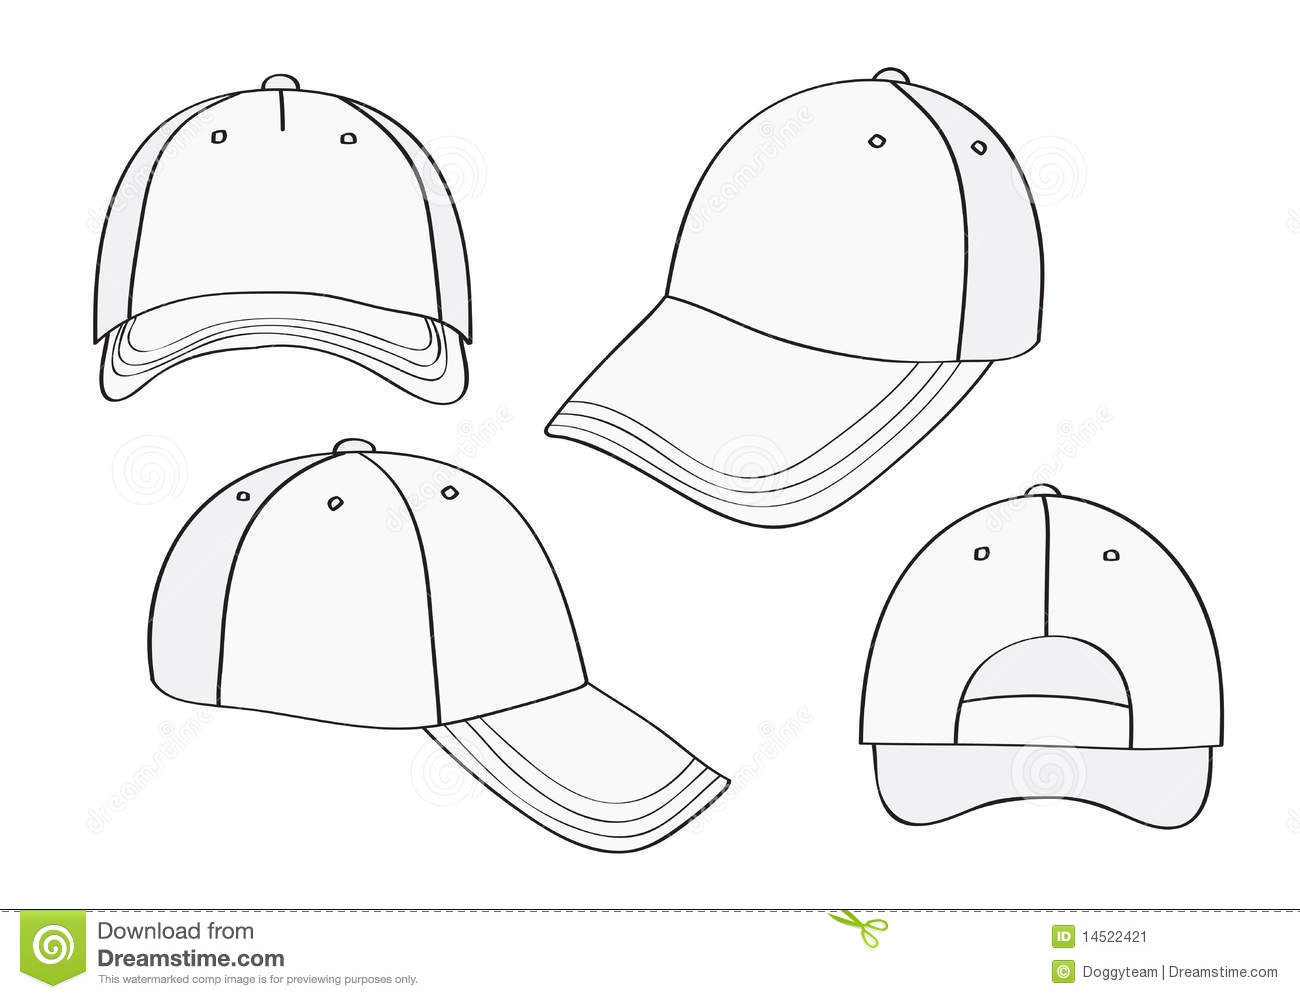 18 blank baseball cap template images baseball cap blank template baseball hat design. Black Bedroom Furniture Sets. Home Design Ideas